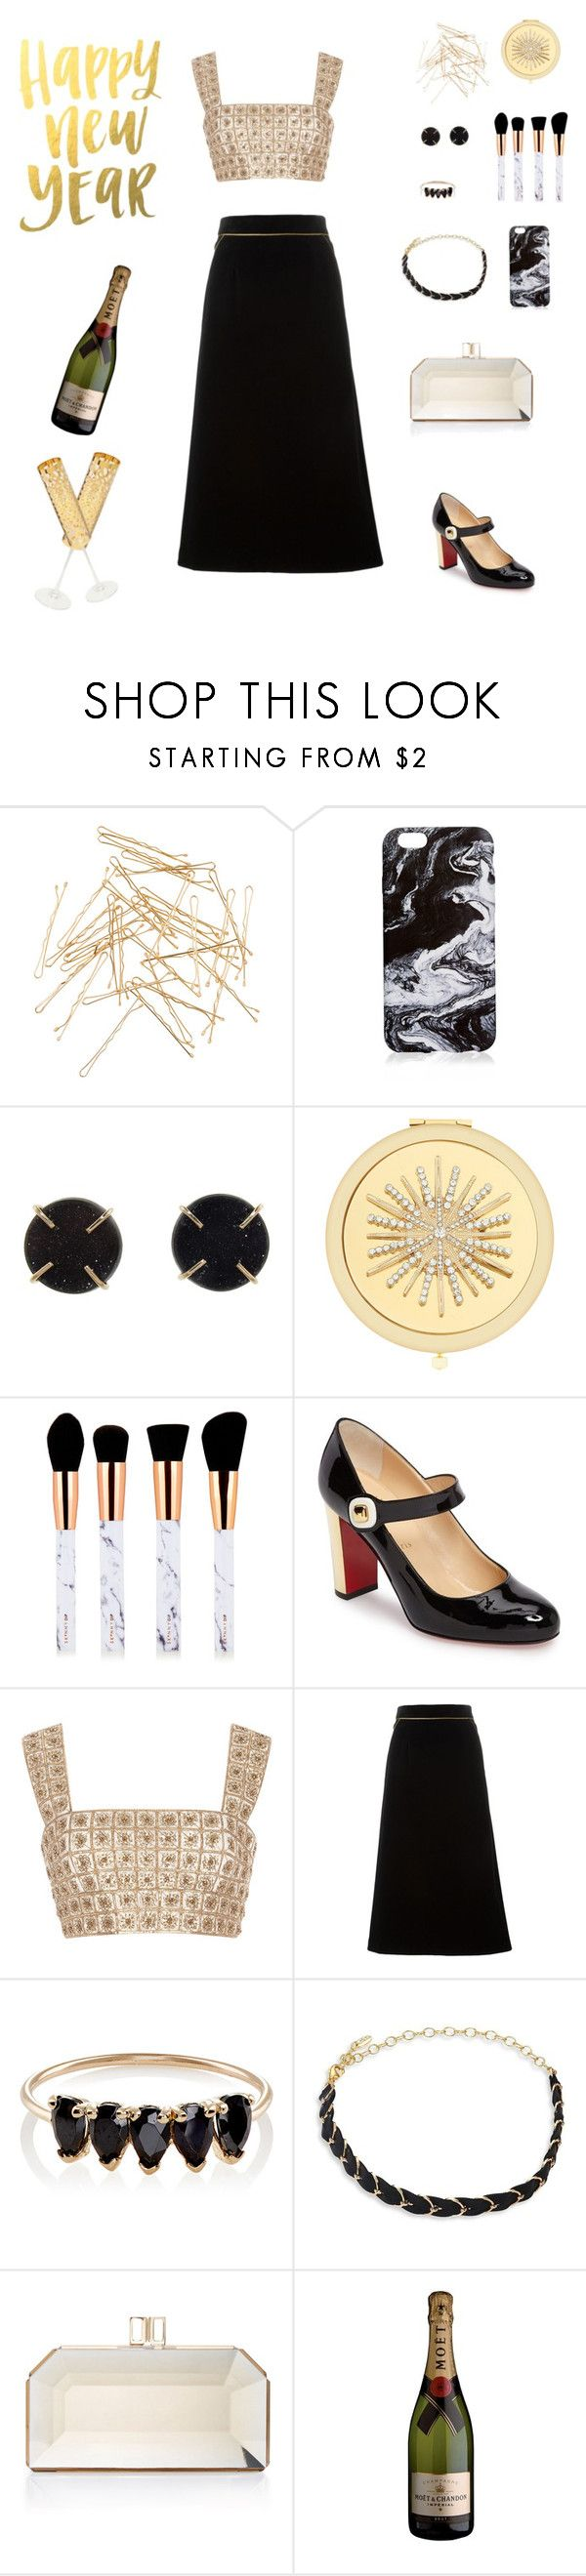 """Stay Golden"" by jessicaoftheoaks ❤ liked on Polyvore featuring Monki, Melissa Joy Manning, Monet, Christian Louboutin, Oscar de la Renta, Yves Saint Laurent, Loren Stewart, Ettika, Judith Leiber and Roberto Cavalli"